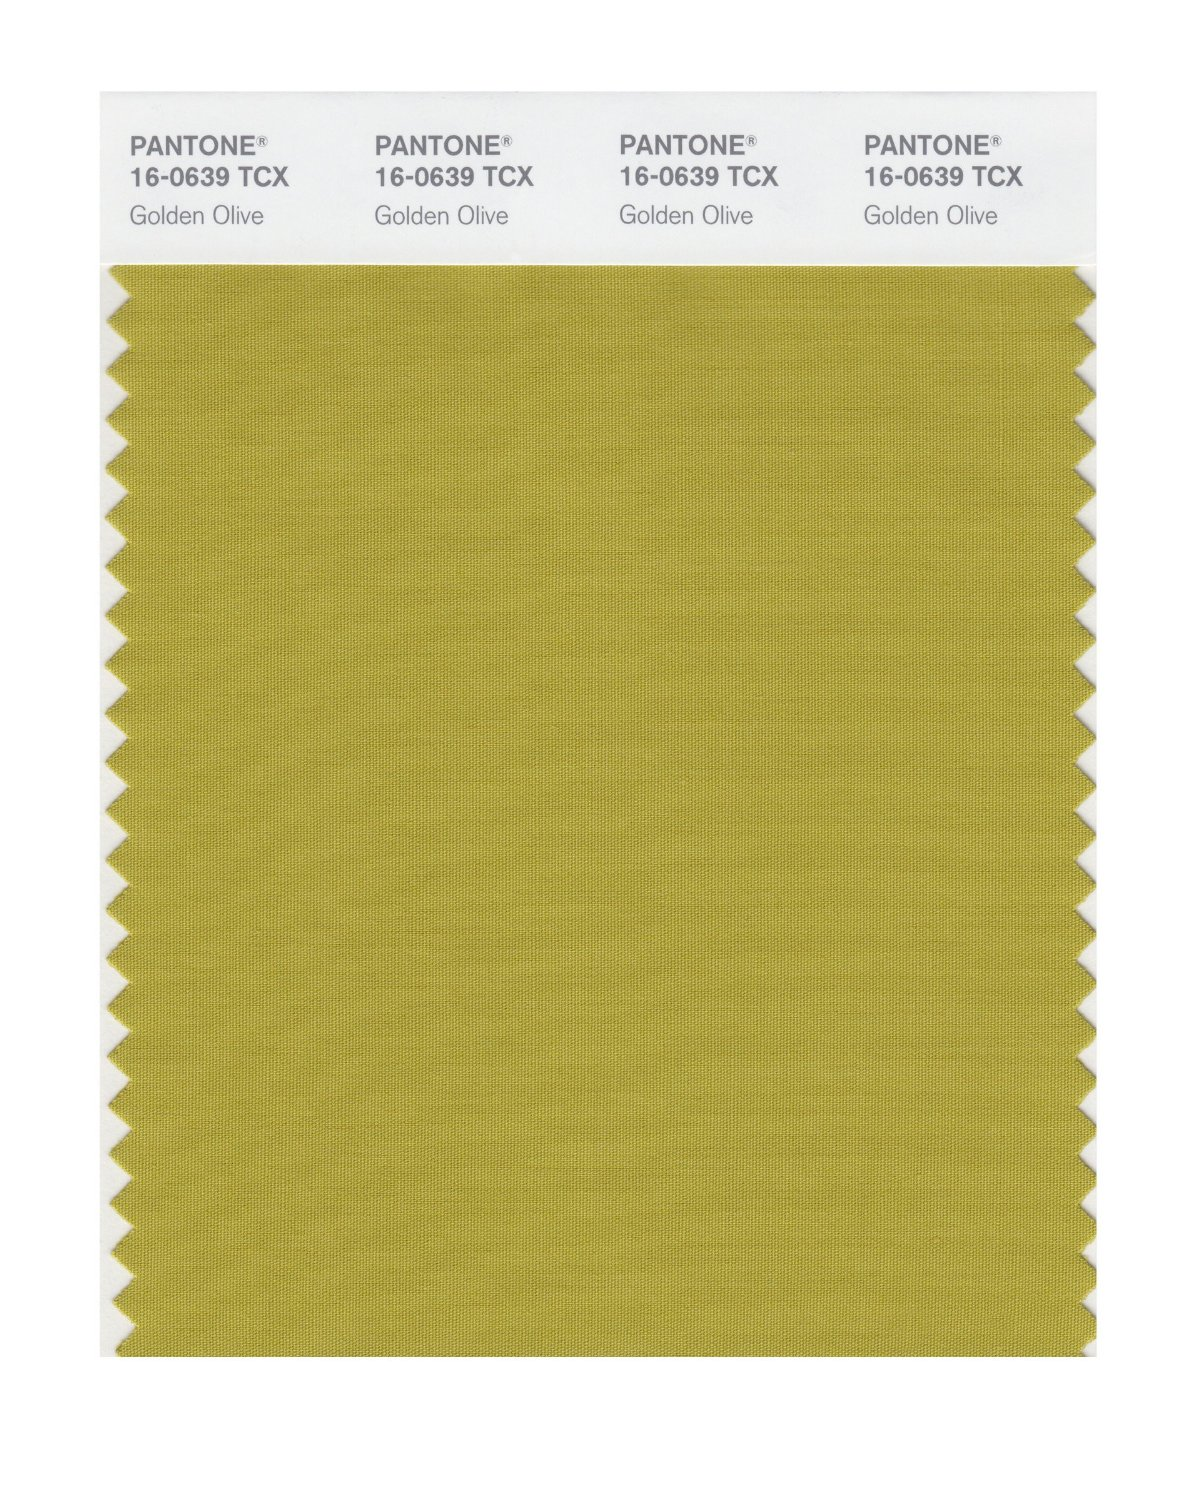 Pantone Smart Swatch 16-0639 Golden Olive